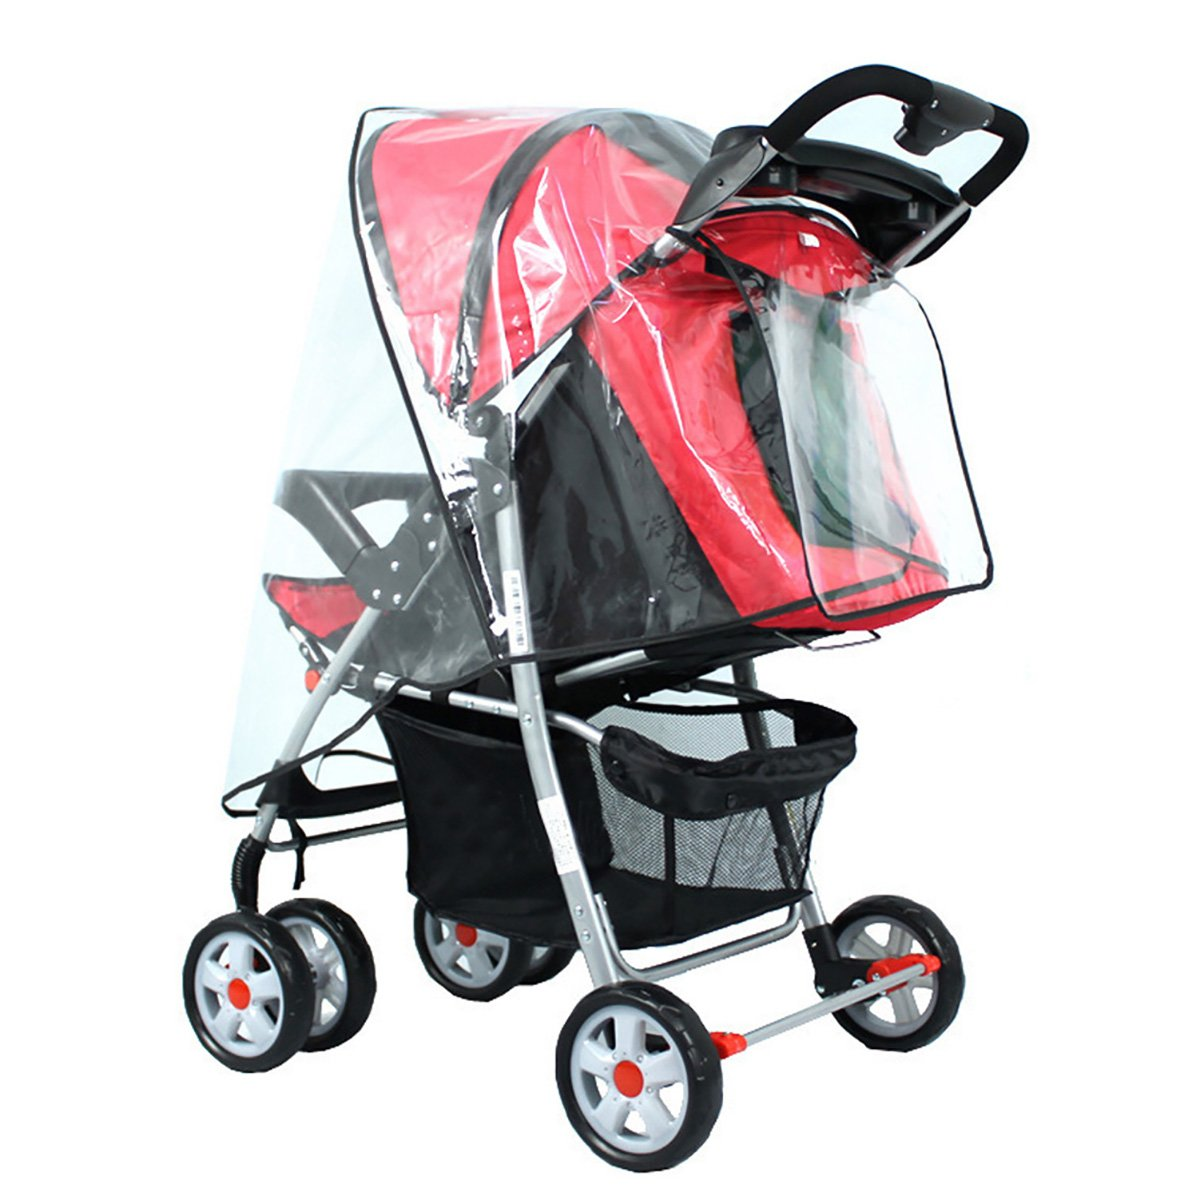 Baby Stroller Rain Cover, CozyLine Travel Outdoor Universal Pushchair Rain Cover Large for Stroller Pram Buggy